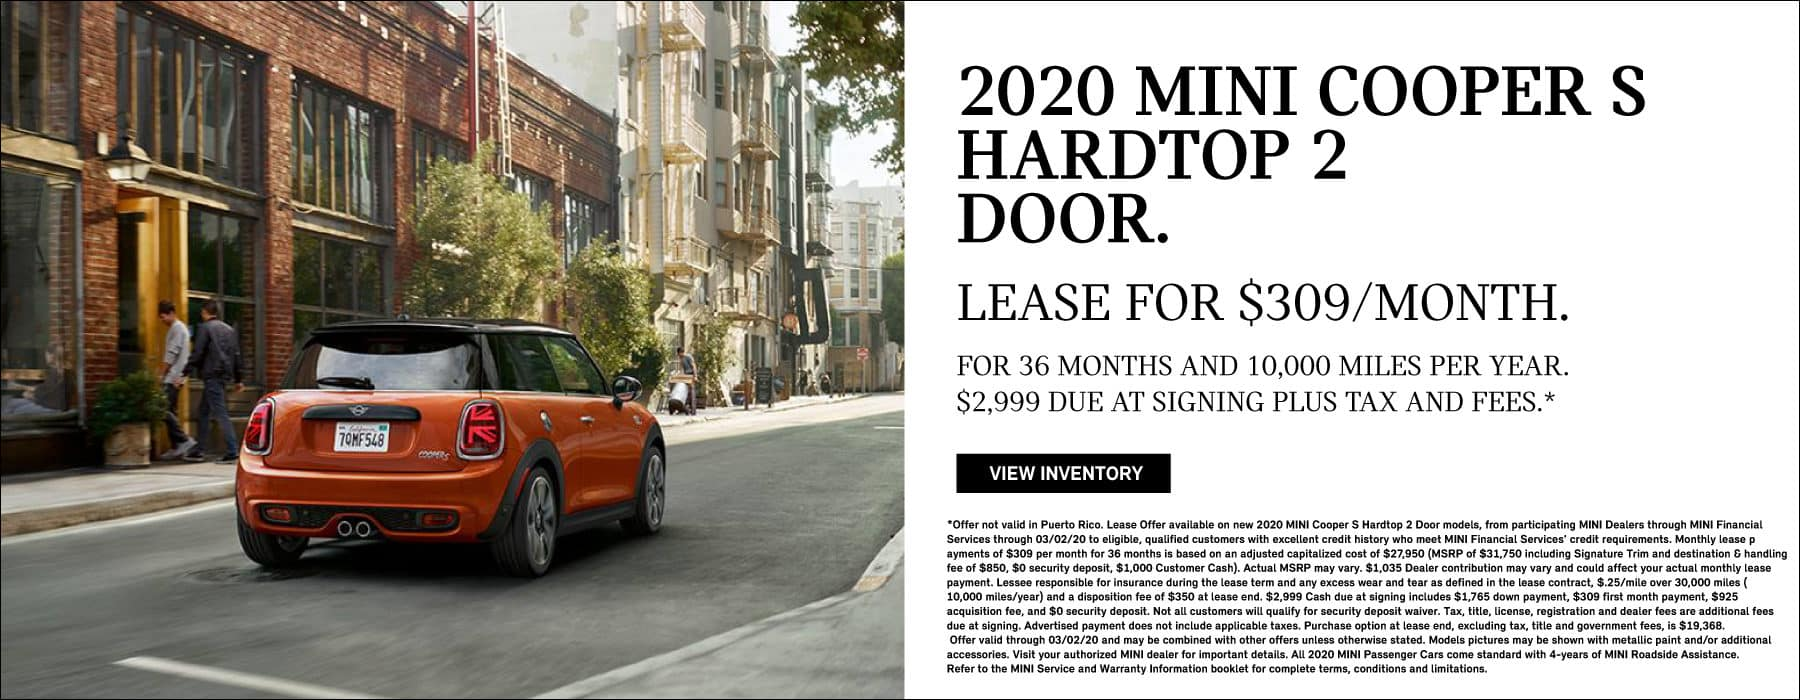 2020 MINI COOPER S HARDTOP 2 DOOR. Lease for $309/month. For 36 months and 10,000 miles per year. $2,999 due at signing plus tax and fees.